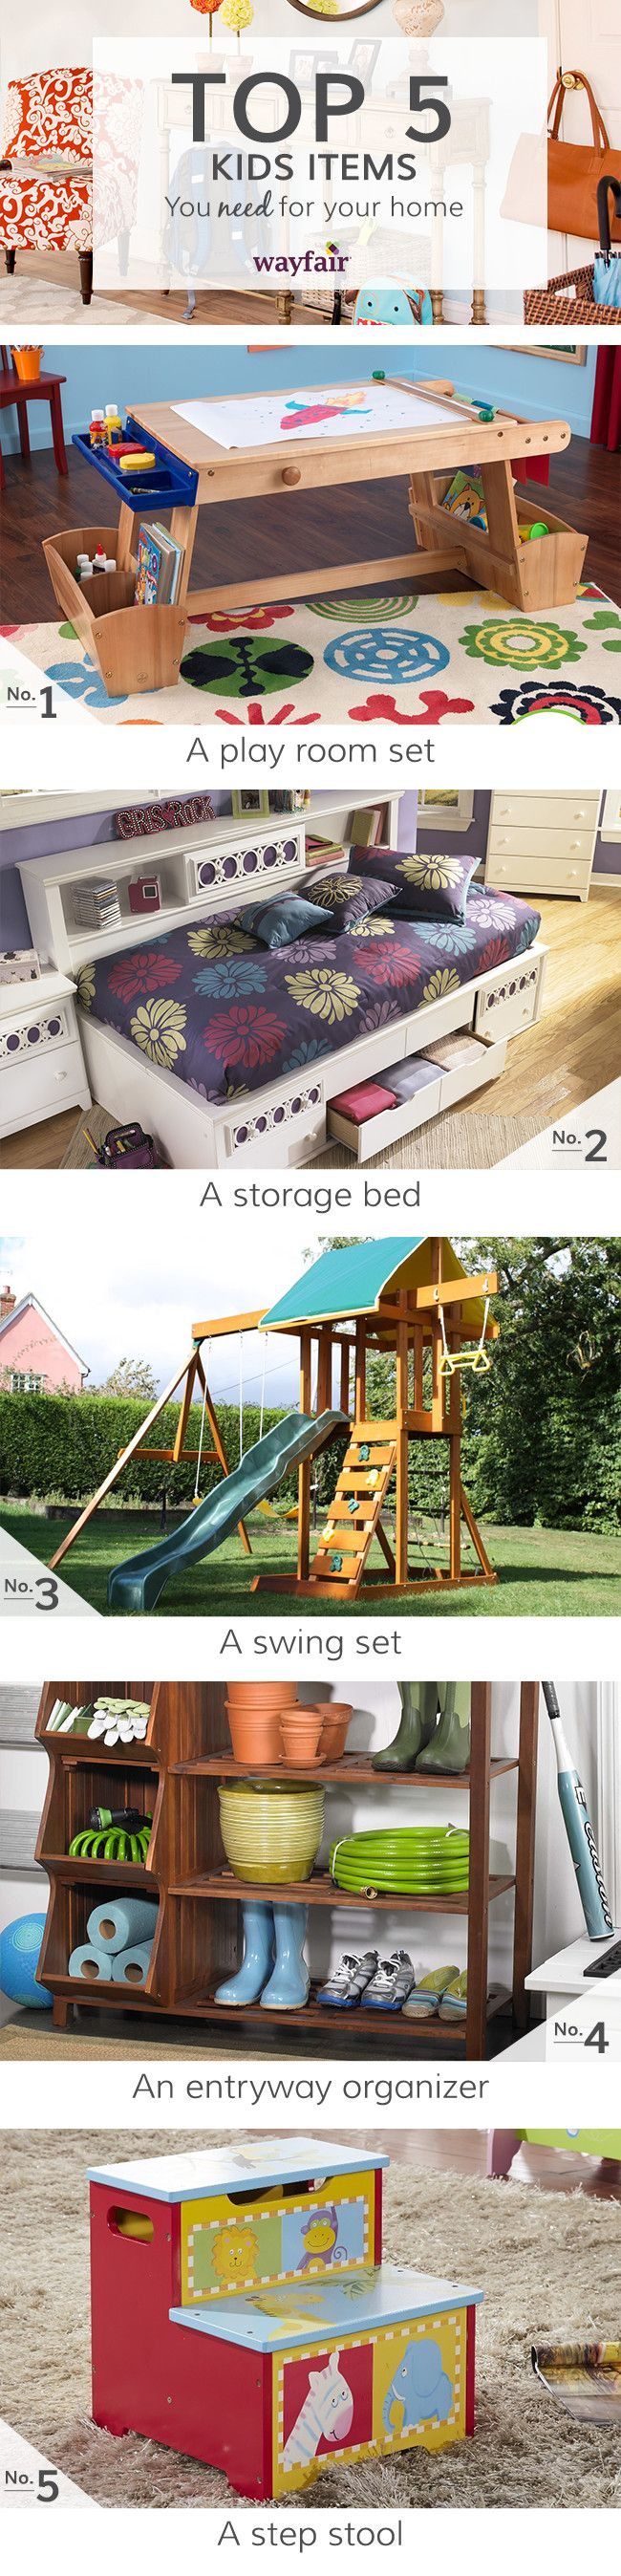 When designing a room for kids, durable multi-purpose pieces with added storage are your best bet. Look for ultra functional pieces like benches with cubbies, desks with extra drawers, and roomy bins with handles so the toys don't pile up. Visit Wayfair and sign up today to get access to exclusive deals everyday up to 70% off. Free shipping on all orders over $49.